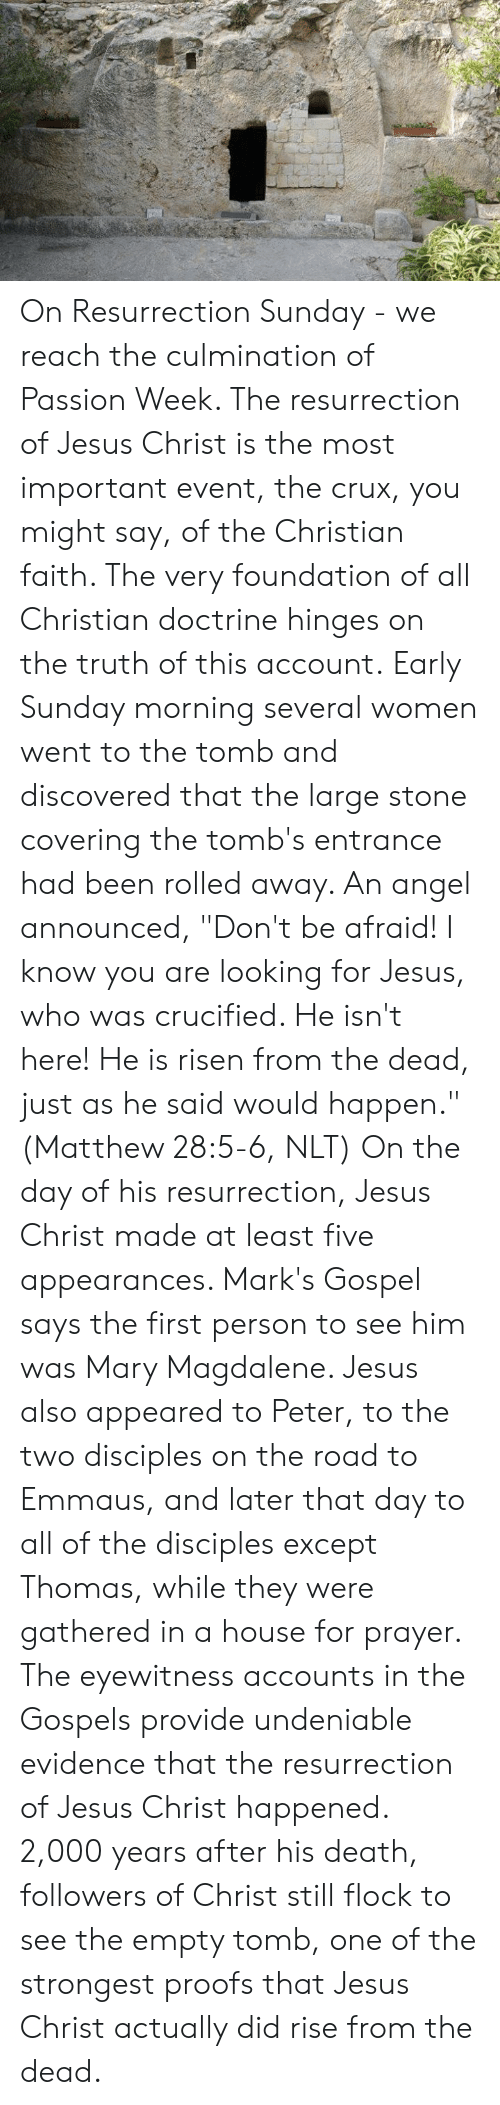 """Jesus, Memes, and Angel: On Resurrection Sunday - we reach the culmination of Passion Week. The resurrection of Jesus Christ is the most important event, the crux, you might say, of the Christian faith. The very foundation of all Christian doctrine hinges on the truth of this account.  Early Sunday morning several women went to the tomb and discovered that the large stone covering the tomb's entrance had been rolled away. An angel announced, """"Don't be afraid! I know you are looking for Jesus, who was crucified. He isn't here! He is risen from the dead, just as he said would happen."""" (Matthew 28:5-6, NLT)  On the day of his resurrection, Jesus Christ made at least five appearances. Mark's Gospel says the first person to see him was Mary Magdalene. Jesus also appeared to Peter, to the two disciples on the road to Emmaus, and later that day to all of the disciples except Thomas, while they were gathered in a house for prayer.  The eyewitness accounts in the Gospels provide undeniable evidence that the resurrection of Jesus Christ happened. 2,000 years after his death, followers of Christ still flock to see the empty tomb, one of the strongest proofs that Jesus Christ actually did rise from the dead."""